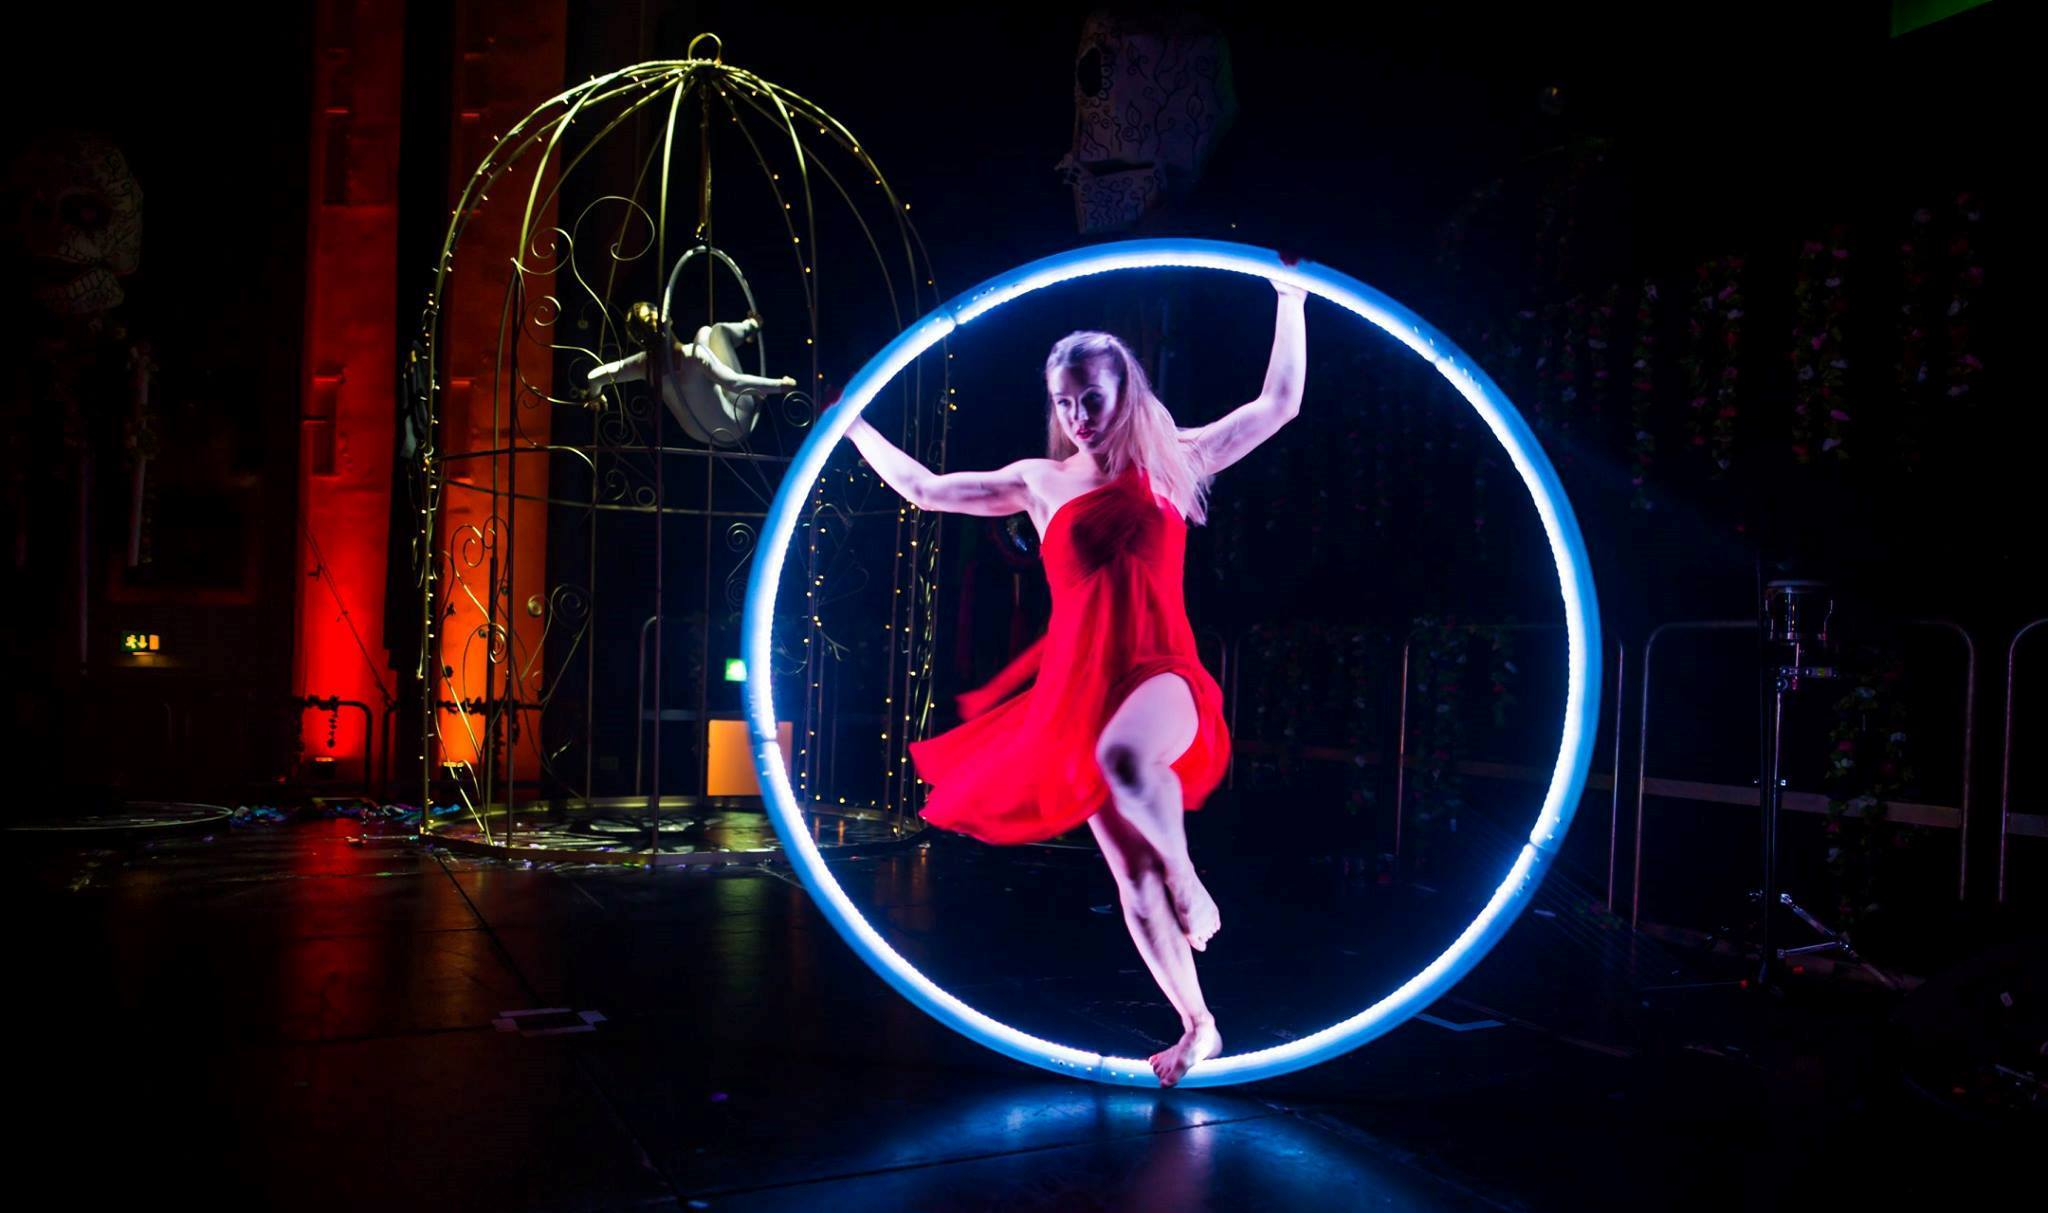 LED cyr wheel act